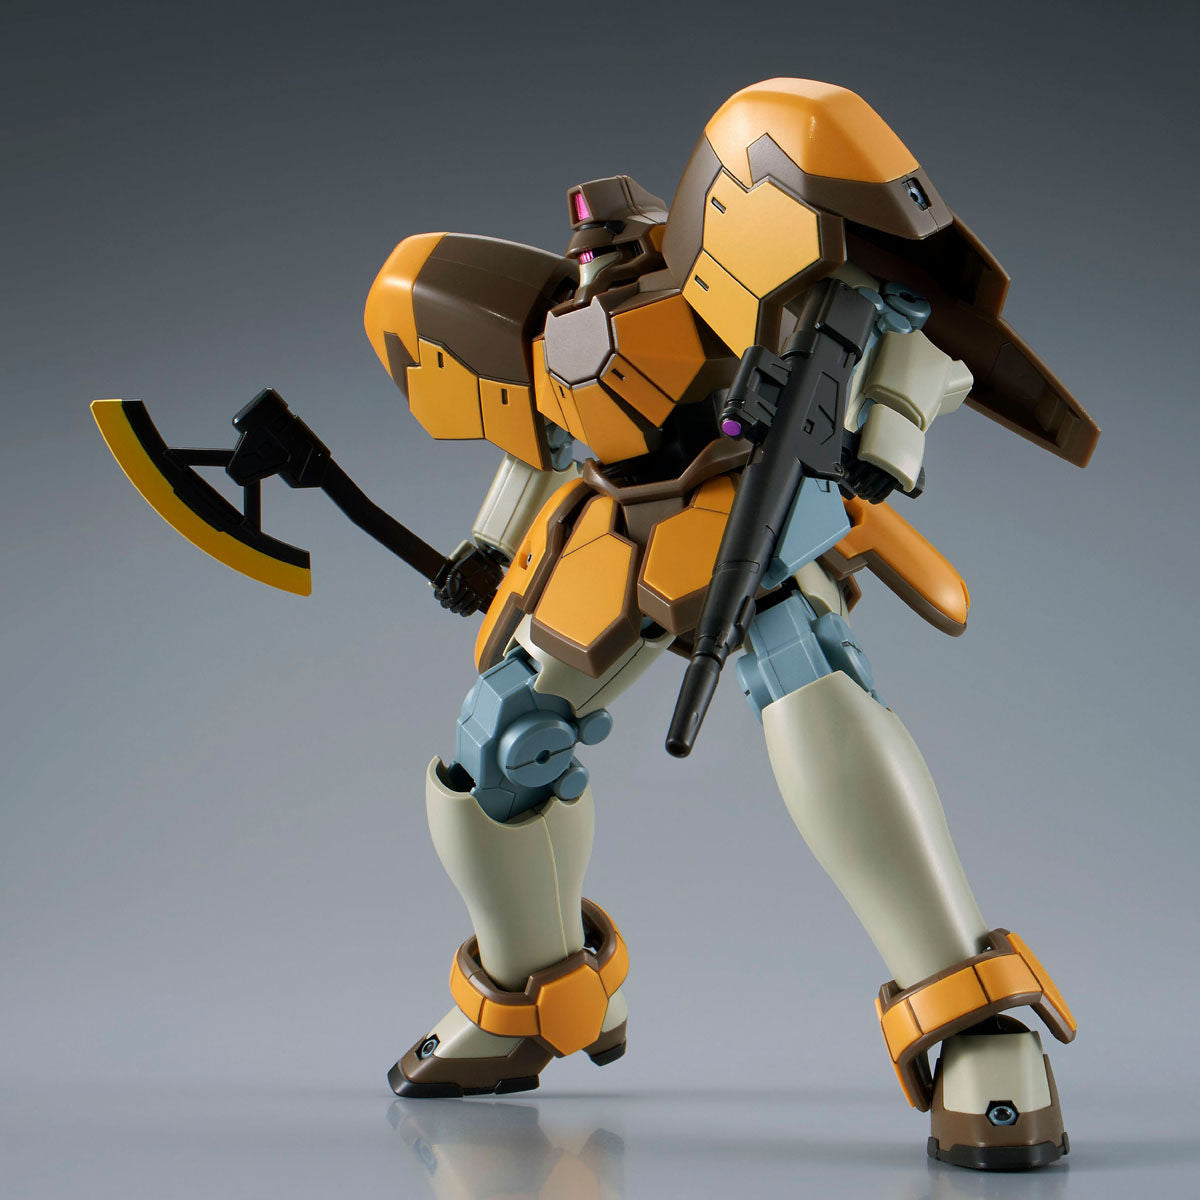 P-Bandai: HGAC 1/144 Maganac Rashid Custom + Abdul Custom [End of September]